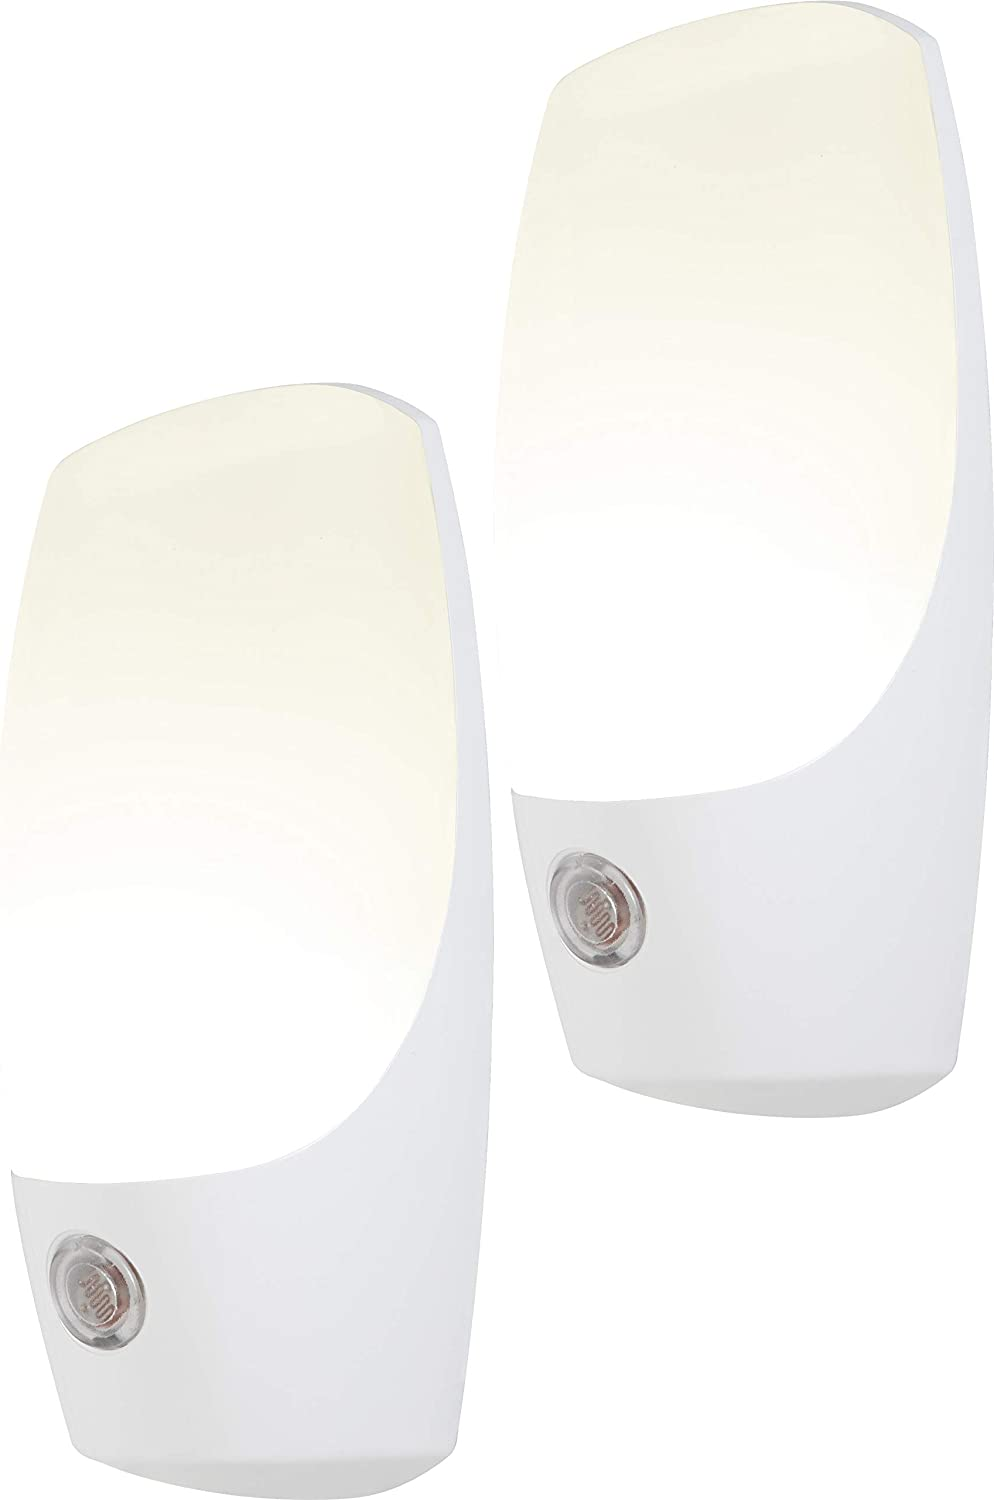 Energizer Automatic Nightlights, 2 Pack, Soft White, Light Sensing, On at Dusk, Off at Dawn, for Kids, Energy Efficient LED, for Hallway, Bedroom, Staircase, Bathroom, 37101, 2 Count